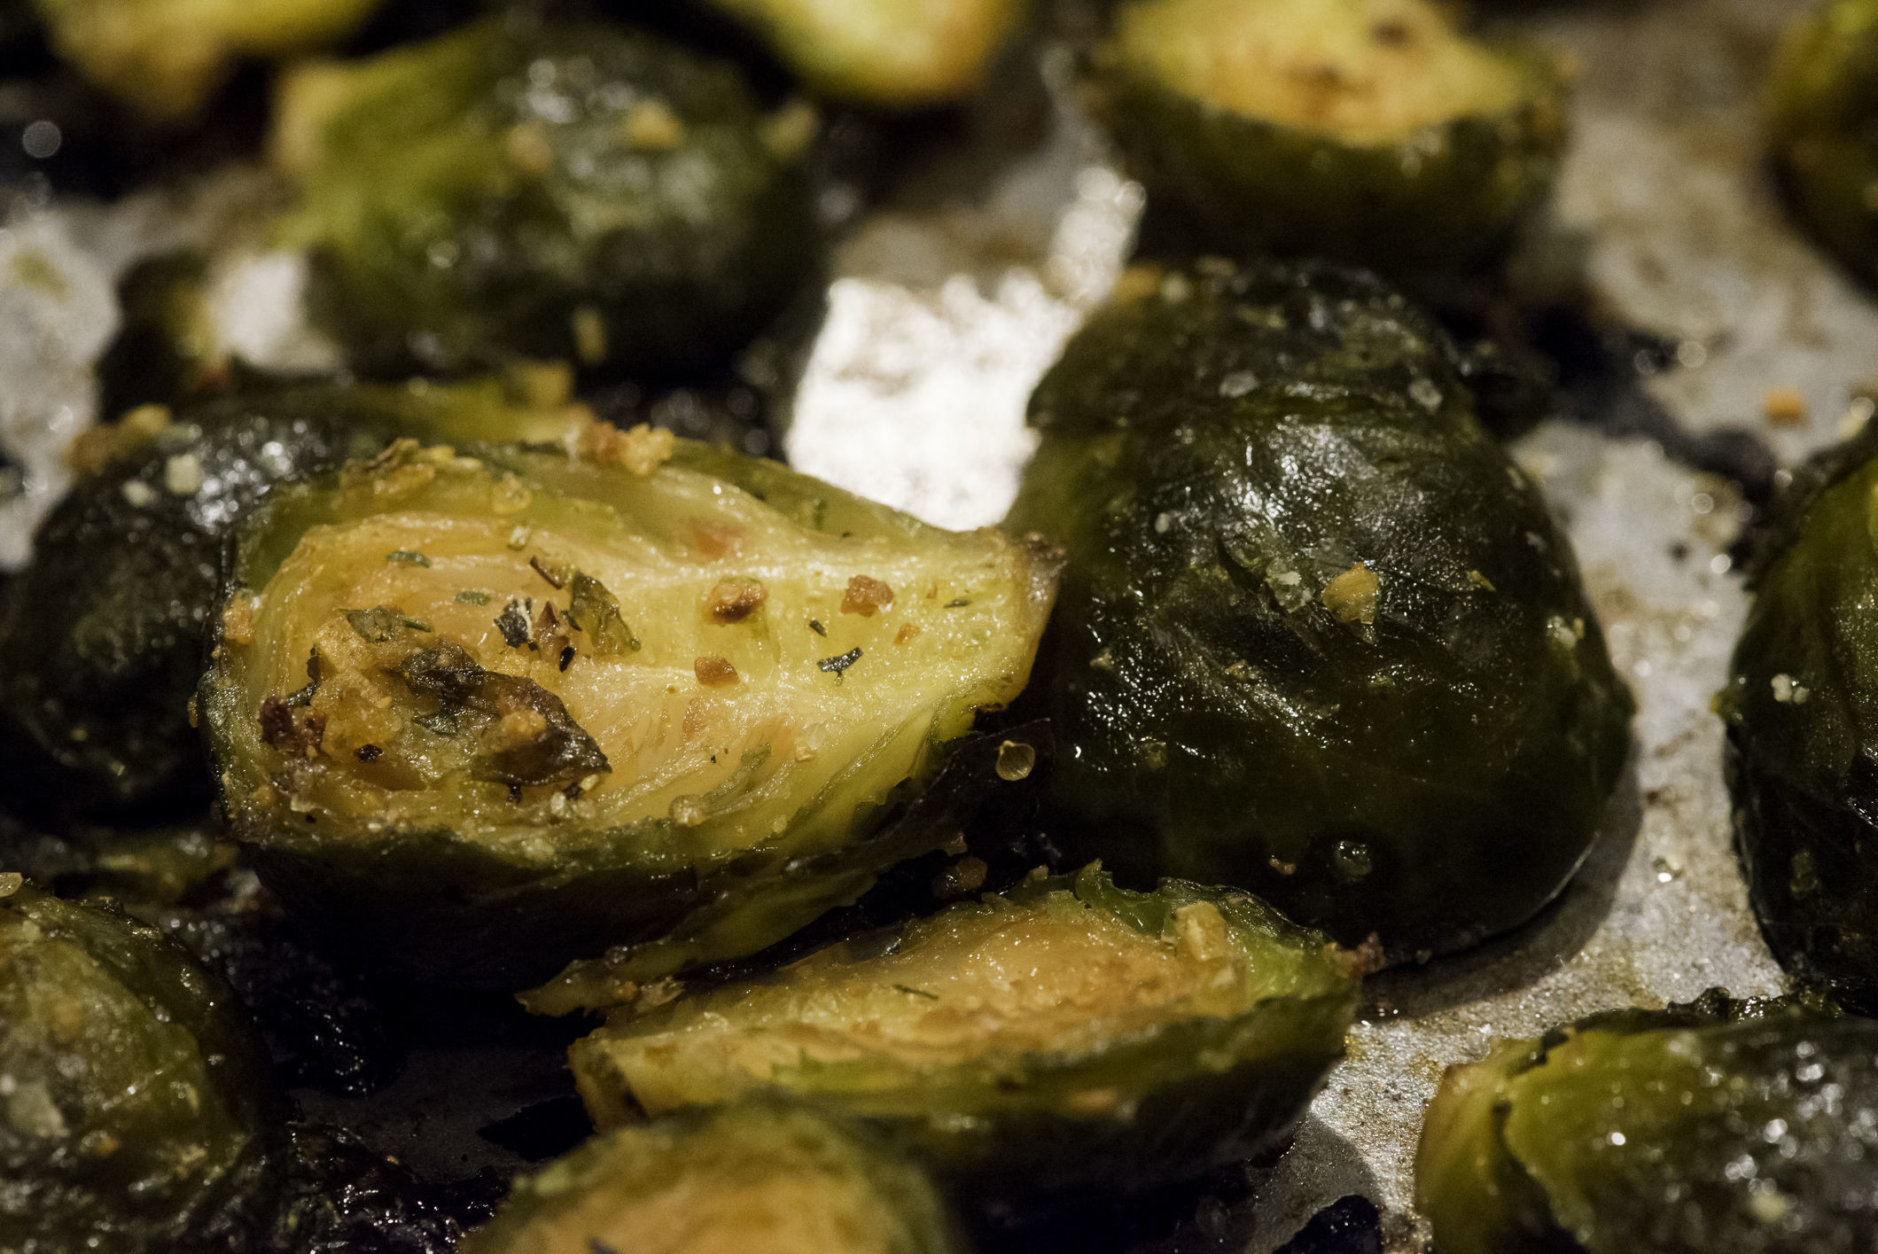 oven pan roasted brussel sprouts in olive oil, salt, sweet red peppers, spices and garlic shot in kitchen studio